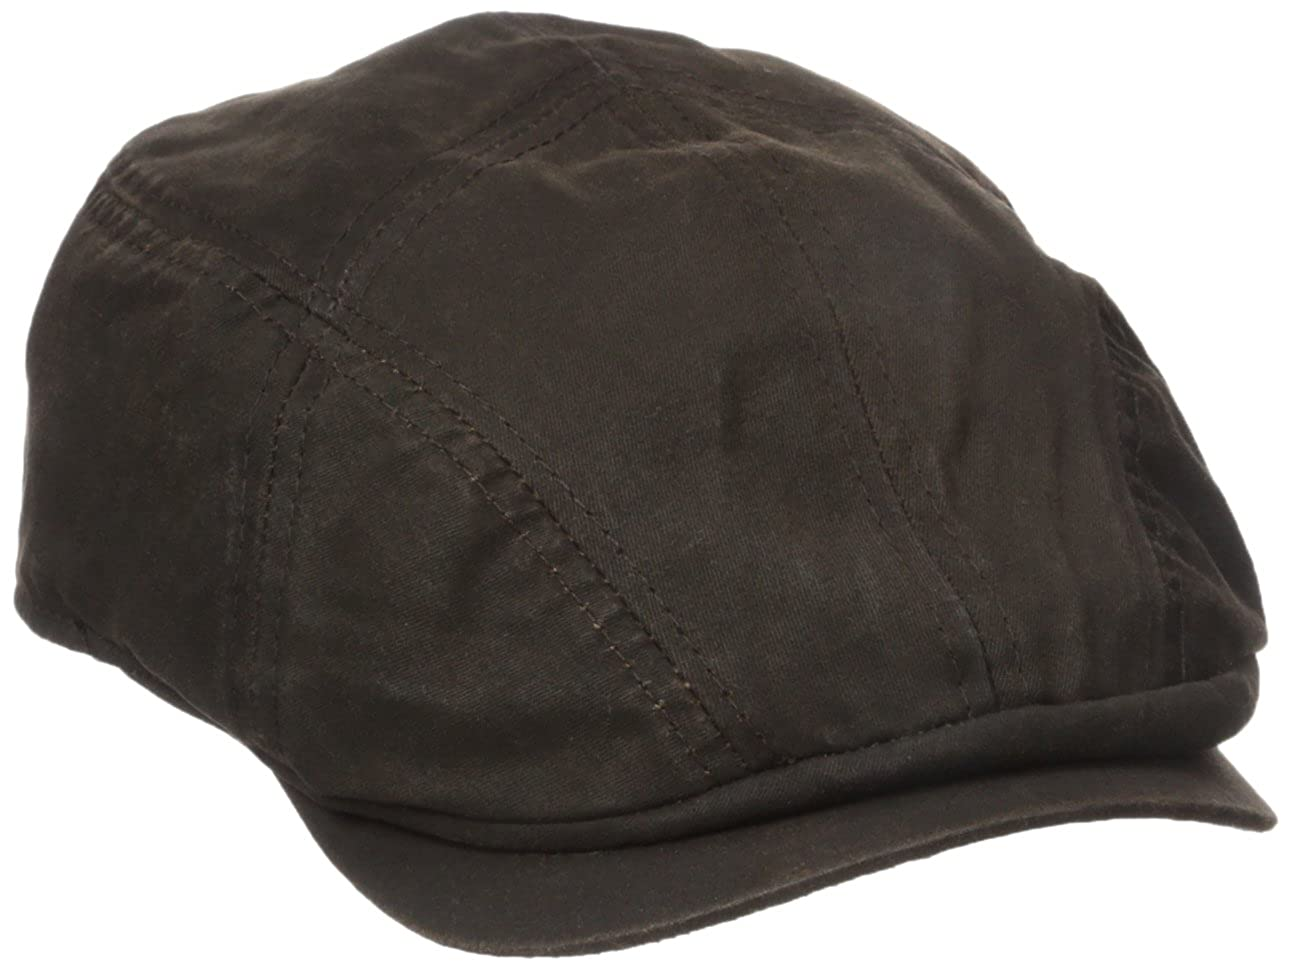 Stetson Mens Weathered Cotton Ivy Cap STC138